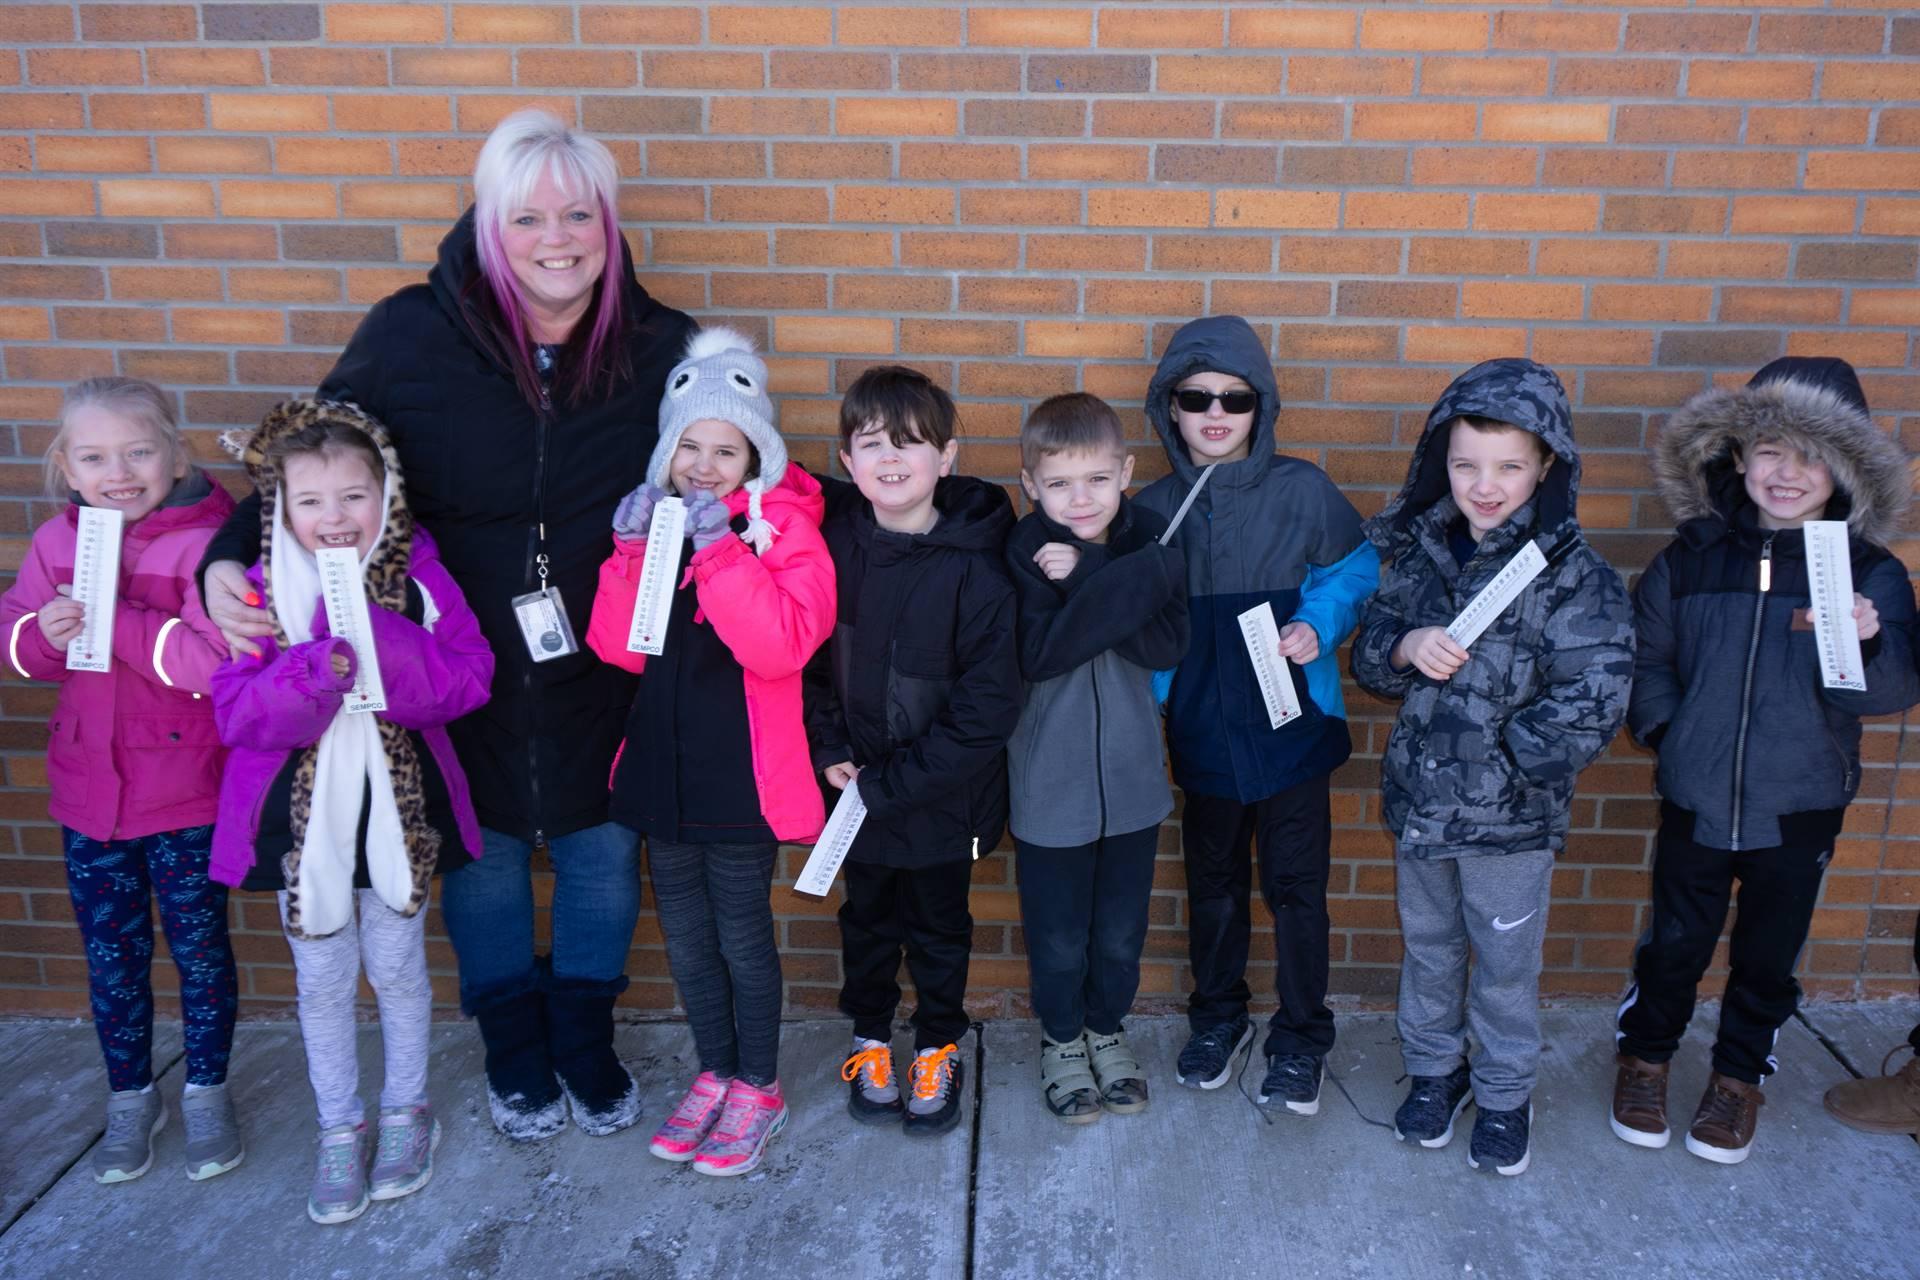 Mrs. Clancy and eight of her students holding thermometers